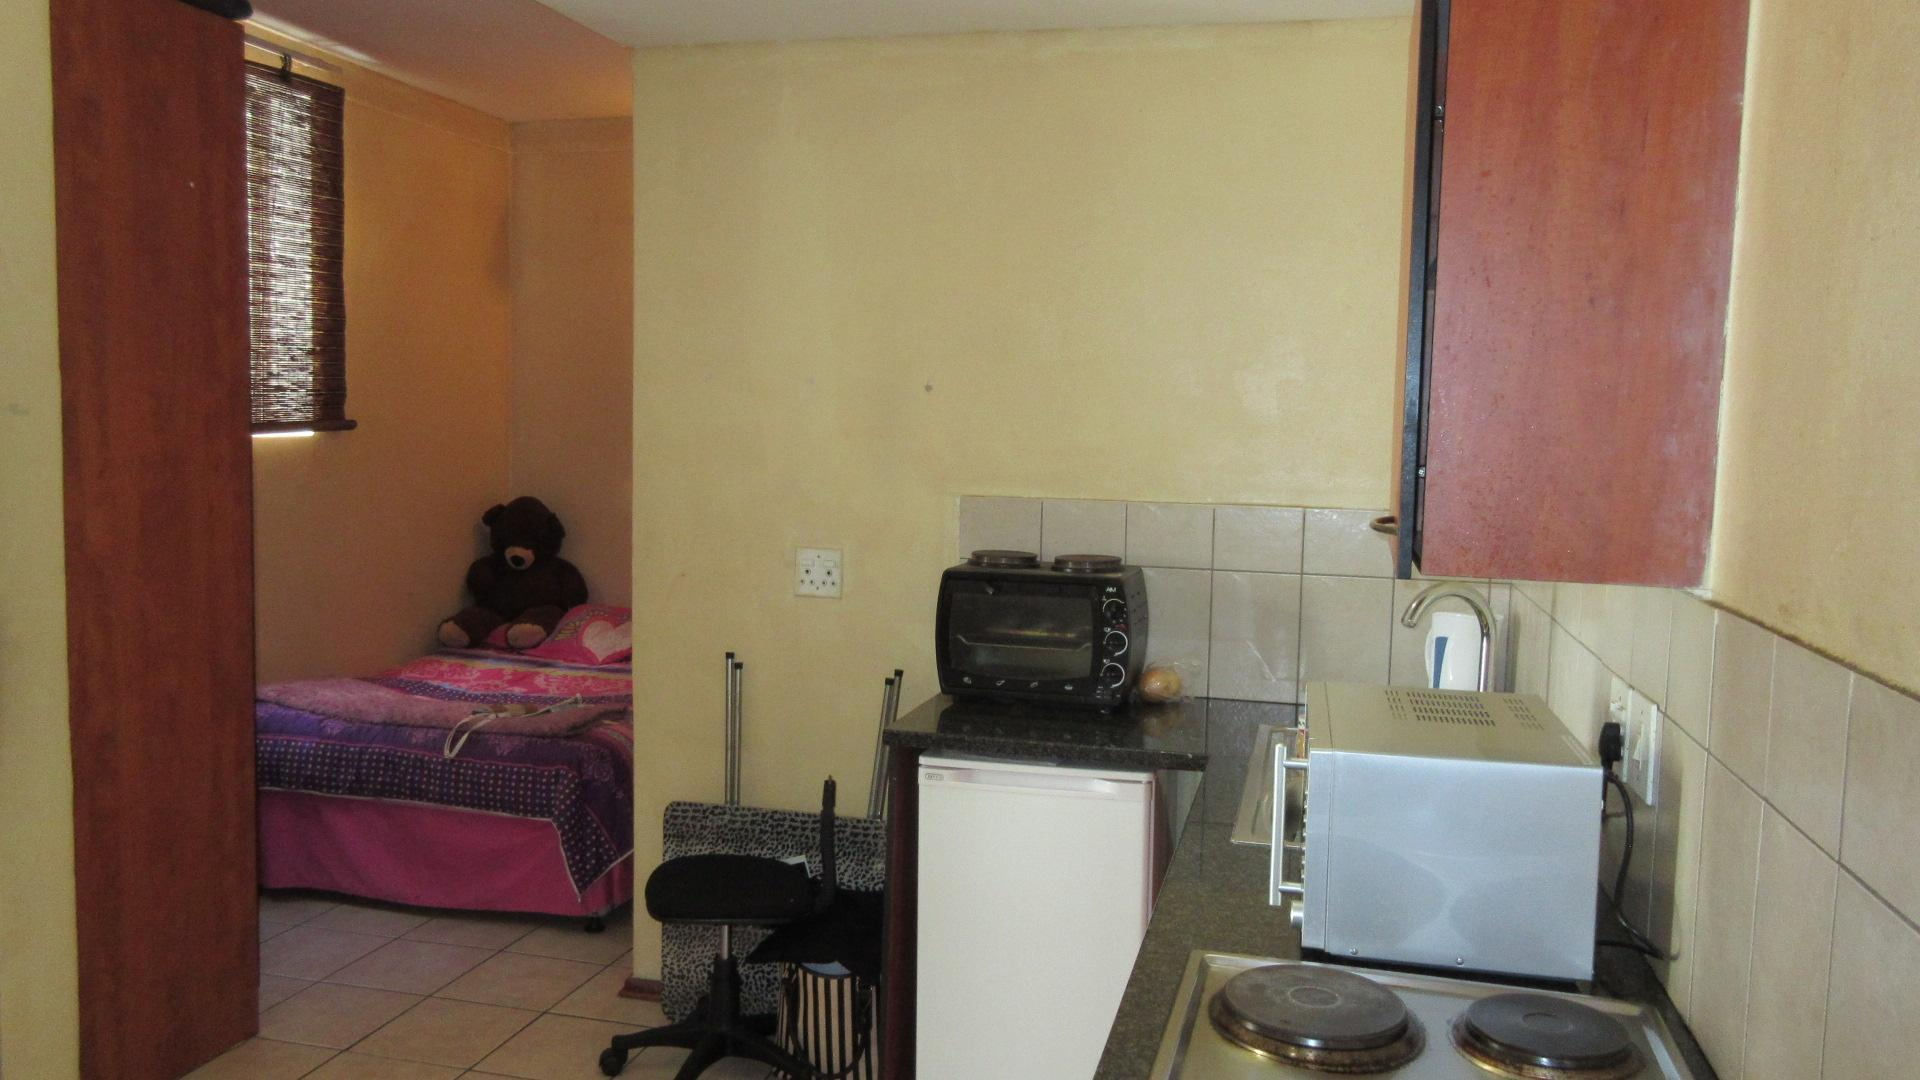 Kitchen of property in Braamfontein